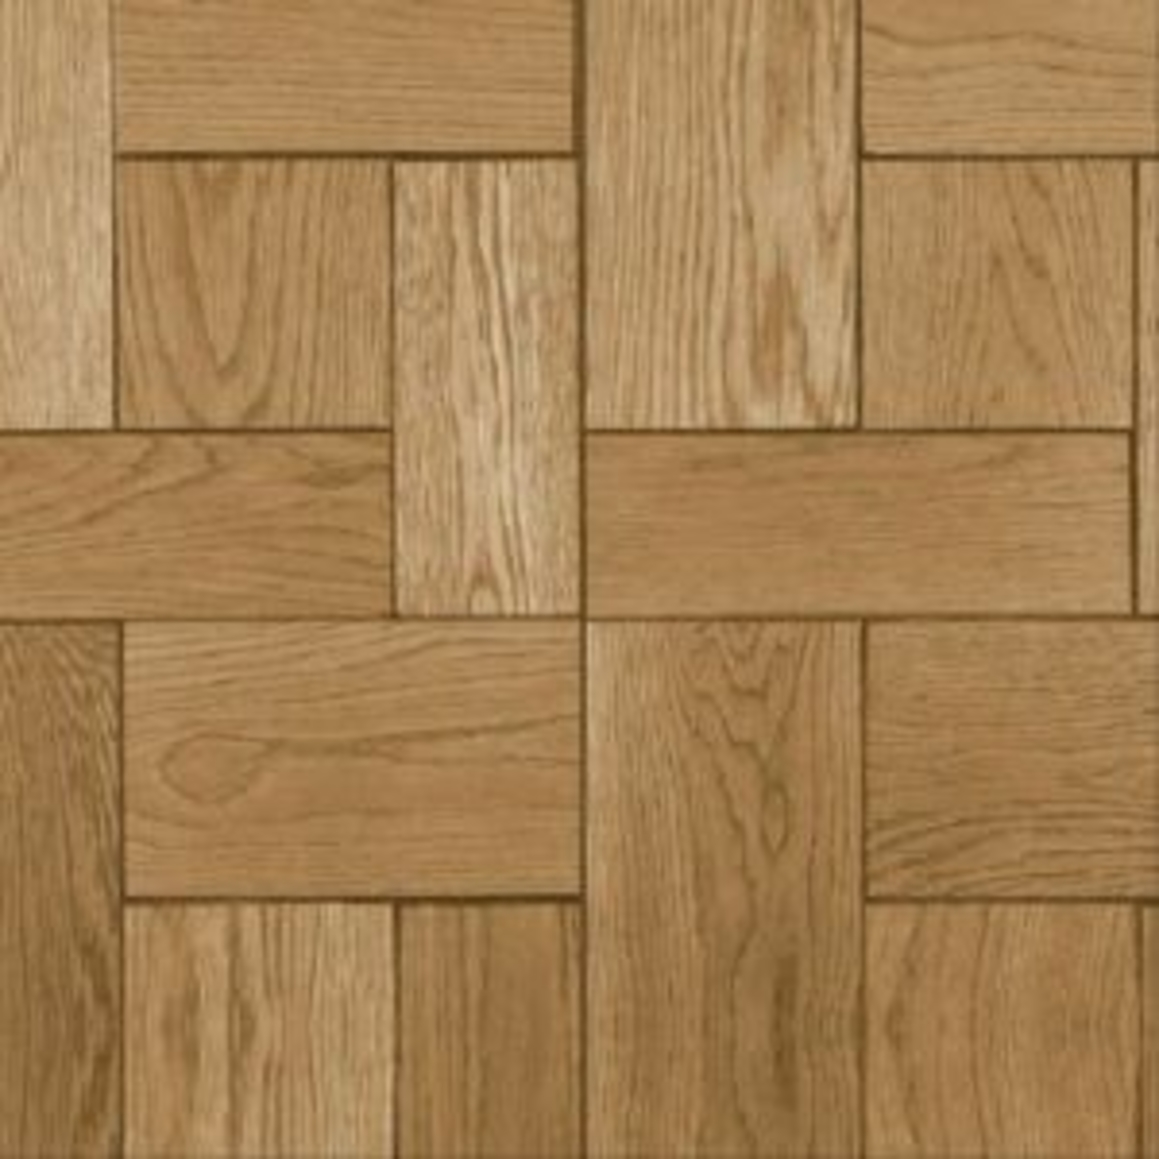 easycubes-woodcarpet-oberflaeche